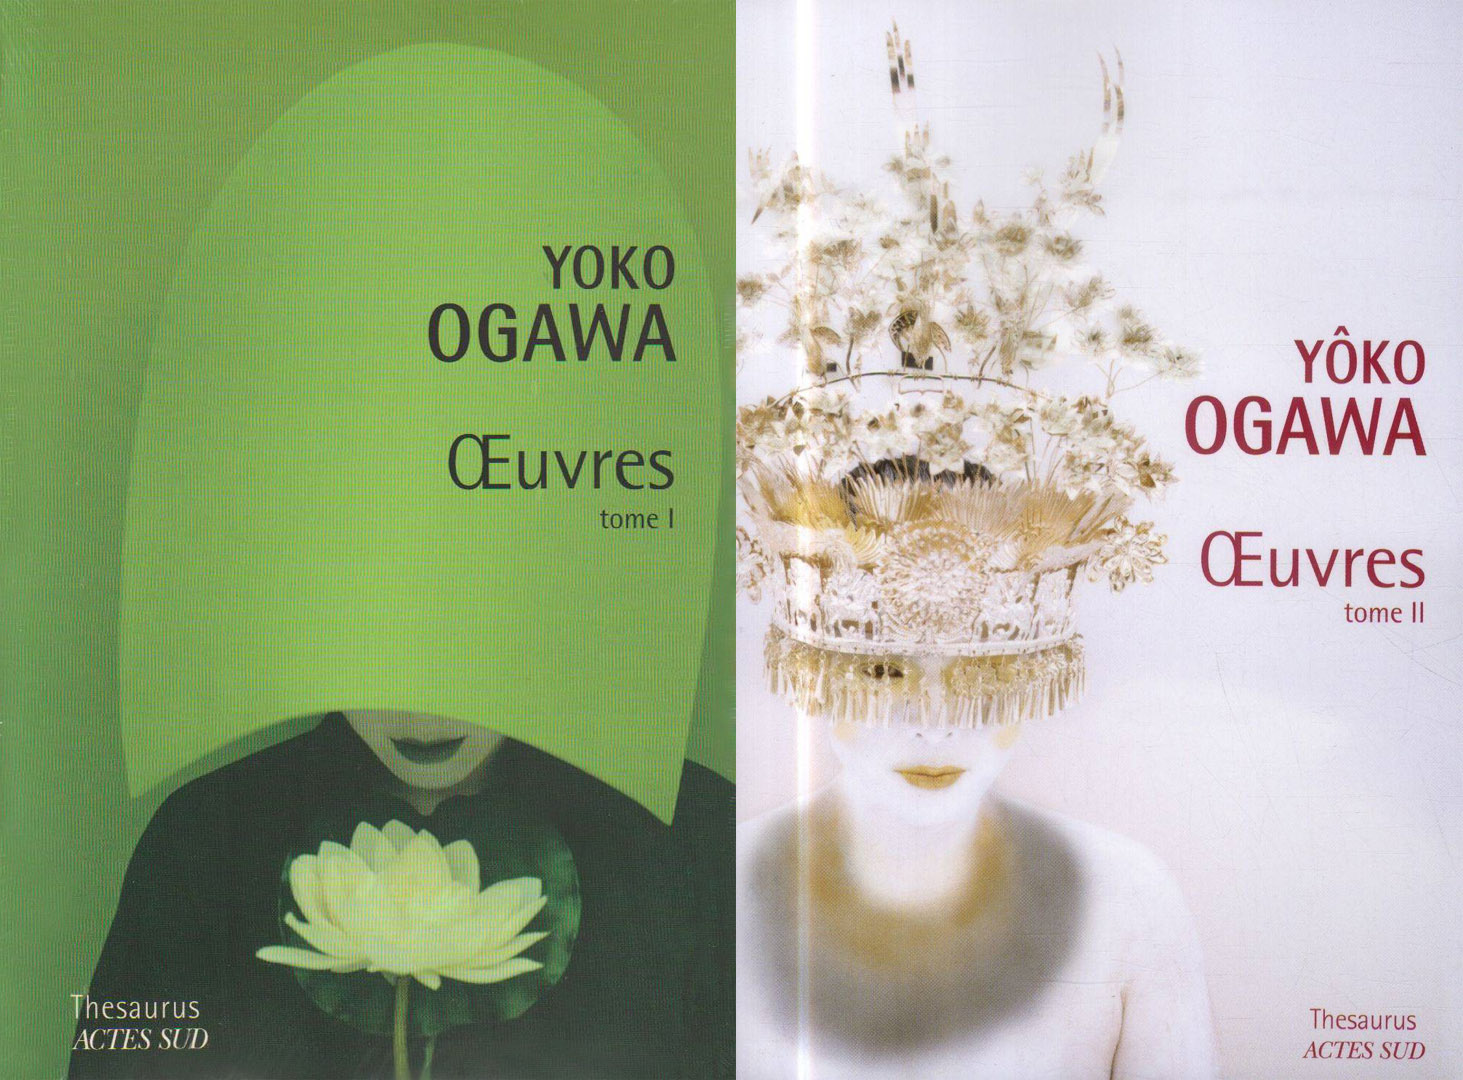 Yoko Ogawa - Oeuvres - tomes 1 et 2  - Thesaurus - Actes Sud